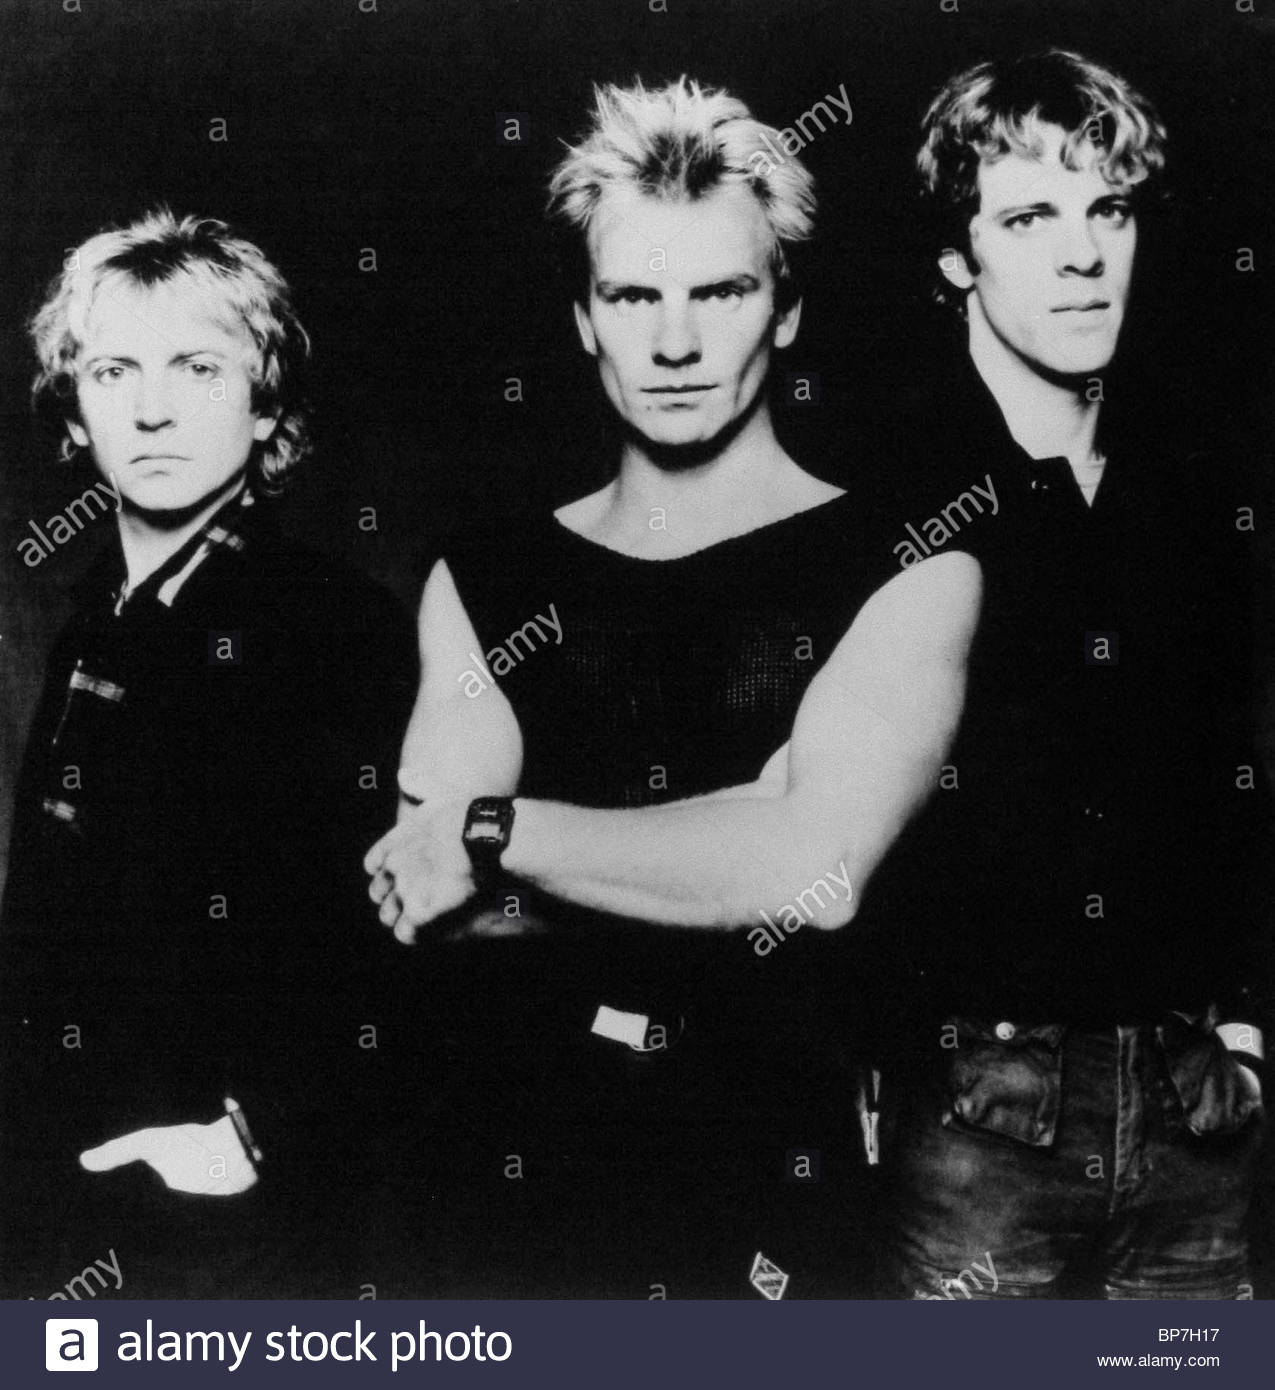 ANDY SUMMERS, STING, STEWART COPELAND, THE POLICE, 1980 - Stock Image